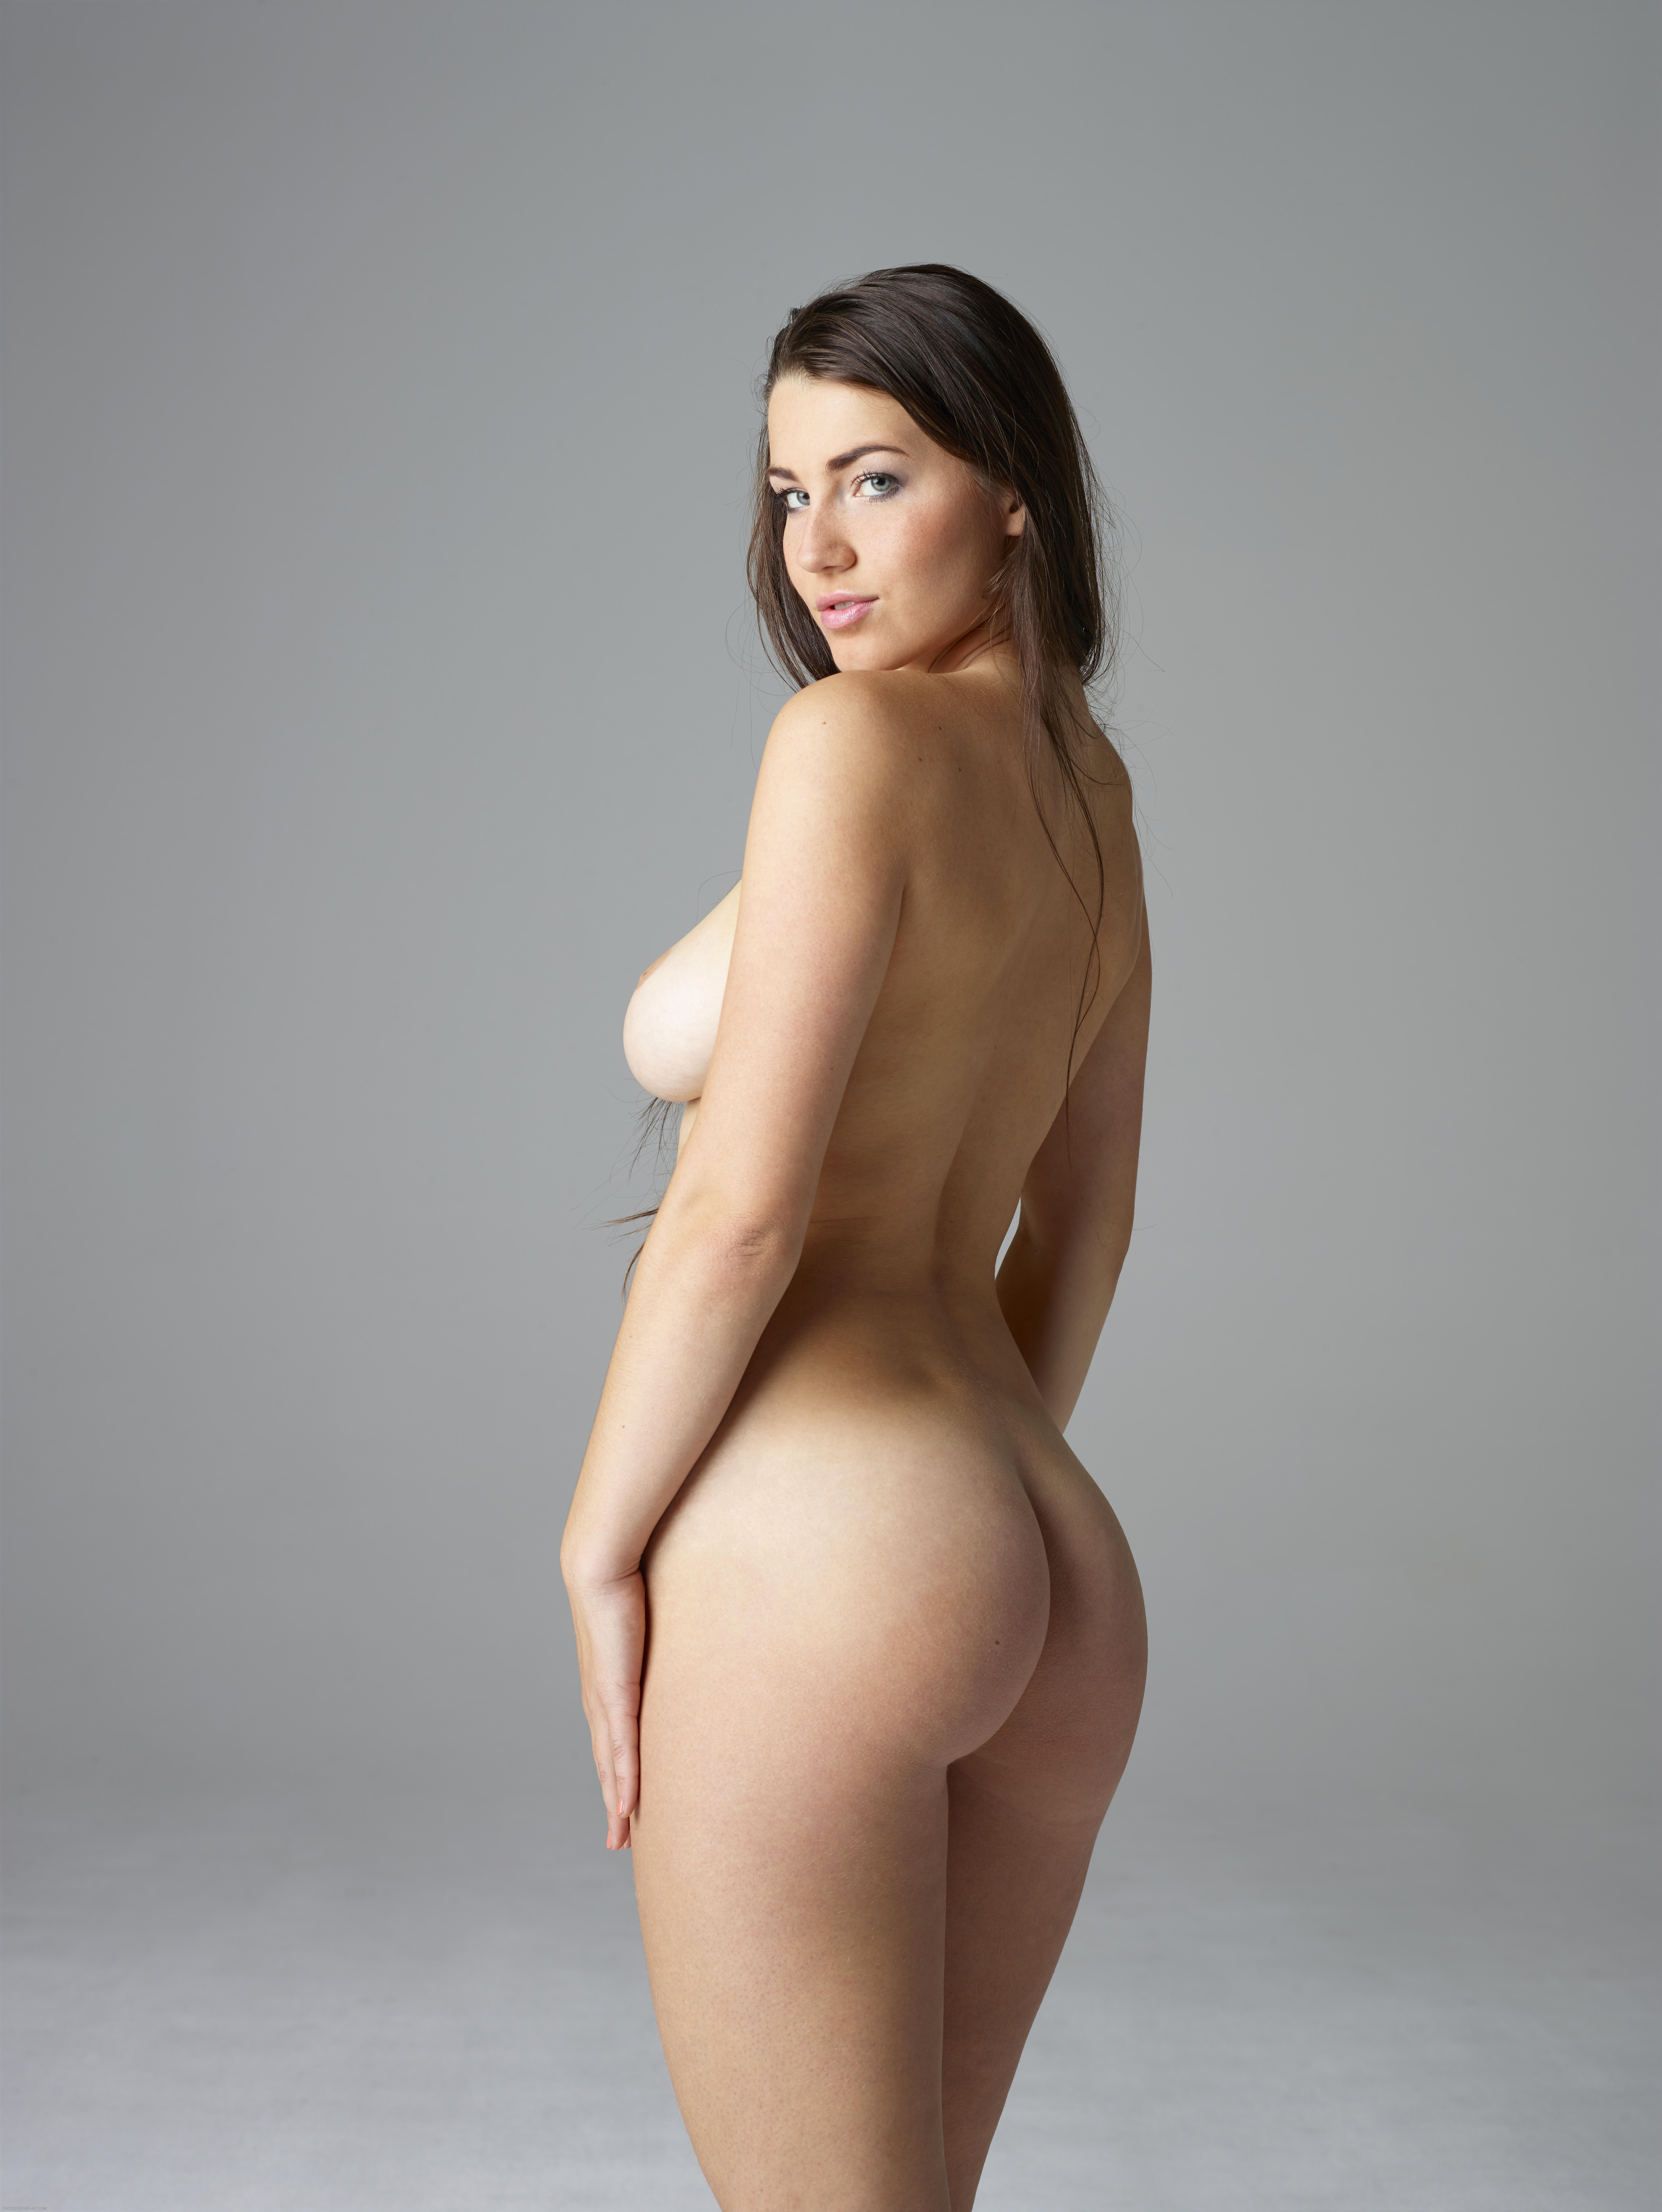 Most perfect female bodies nude